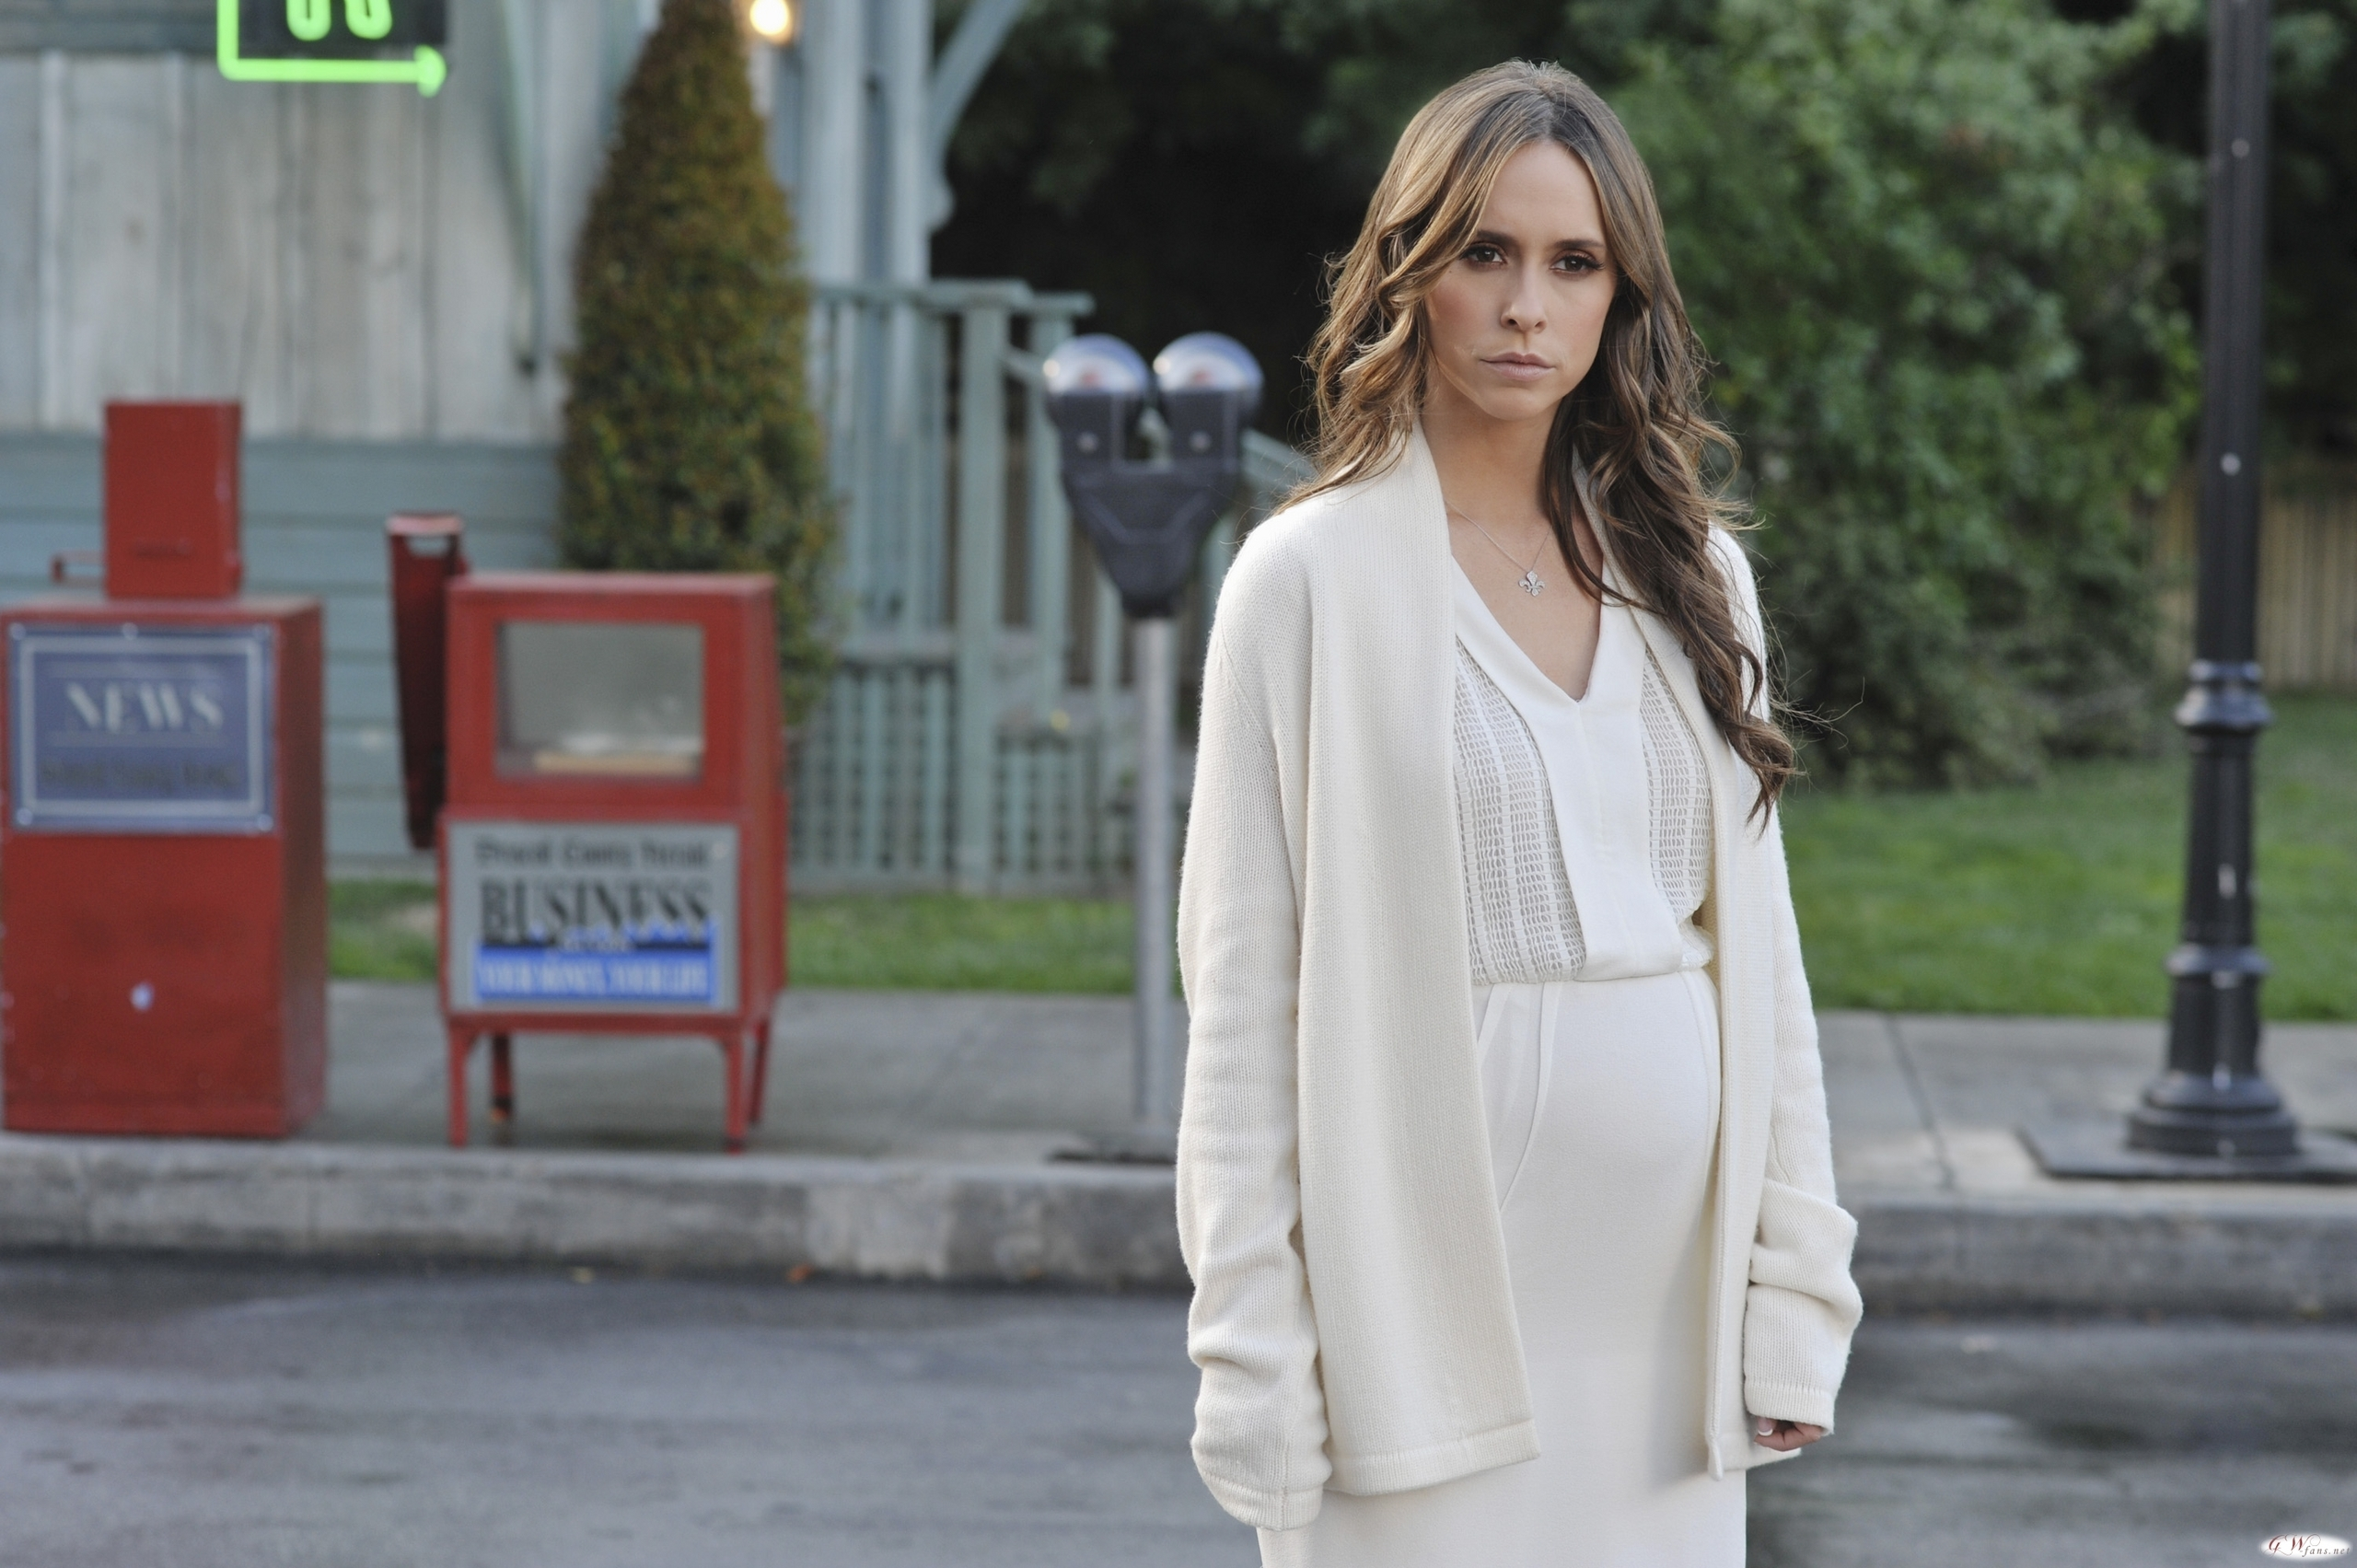 Ghost whisperer 4.23 the book of changes promotional photos